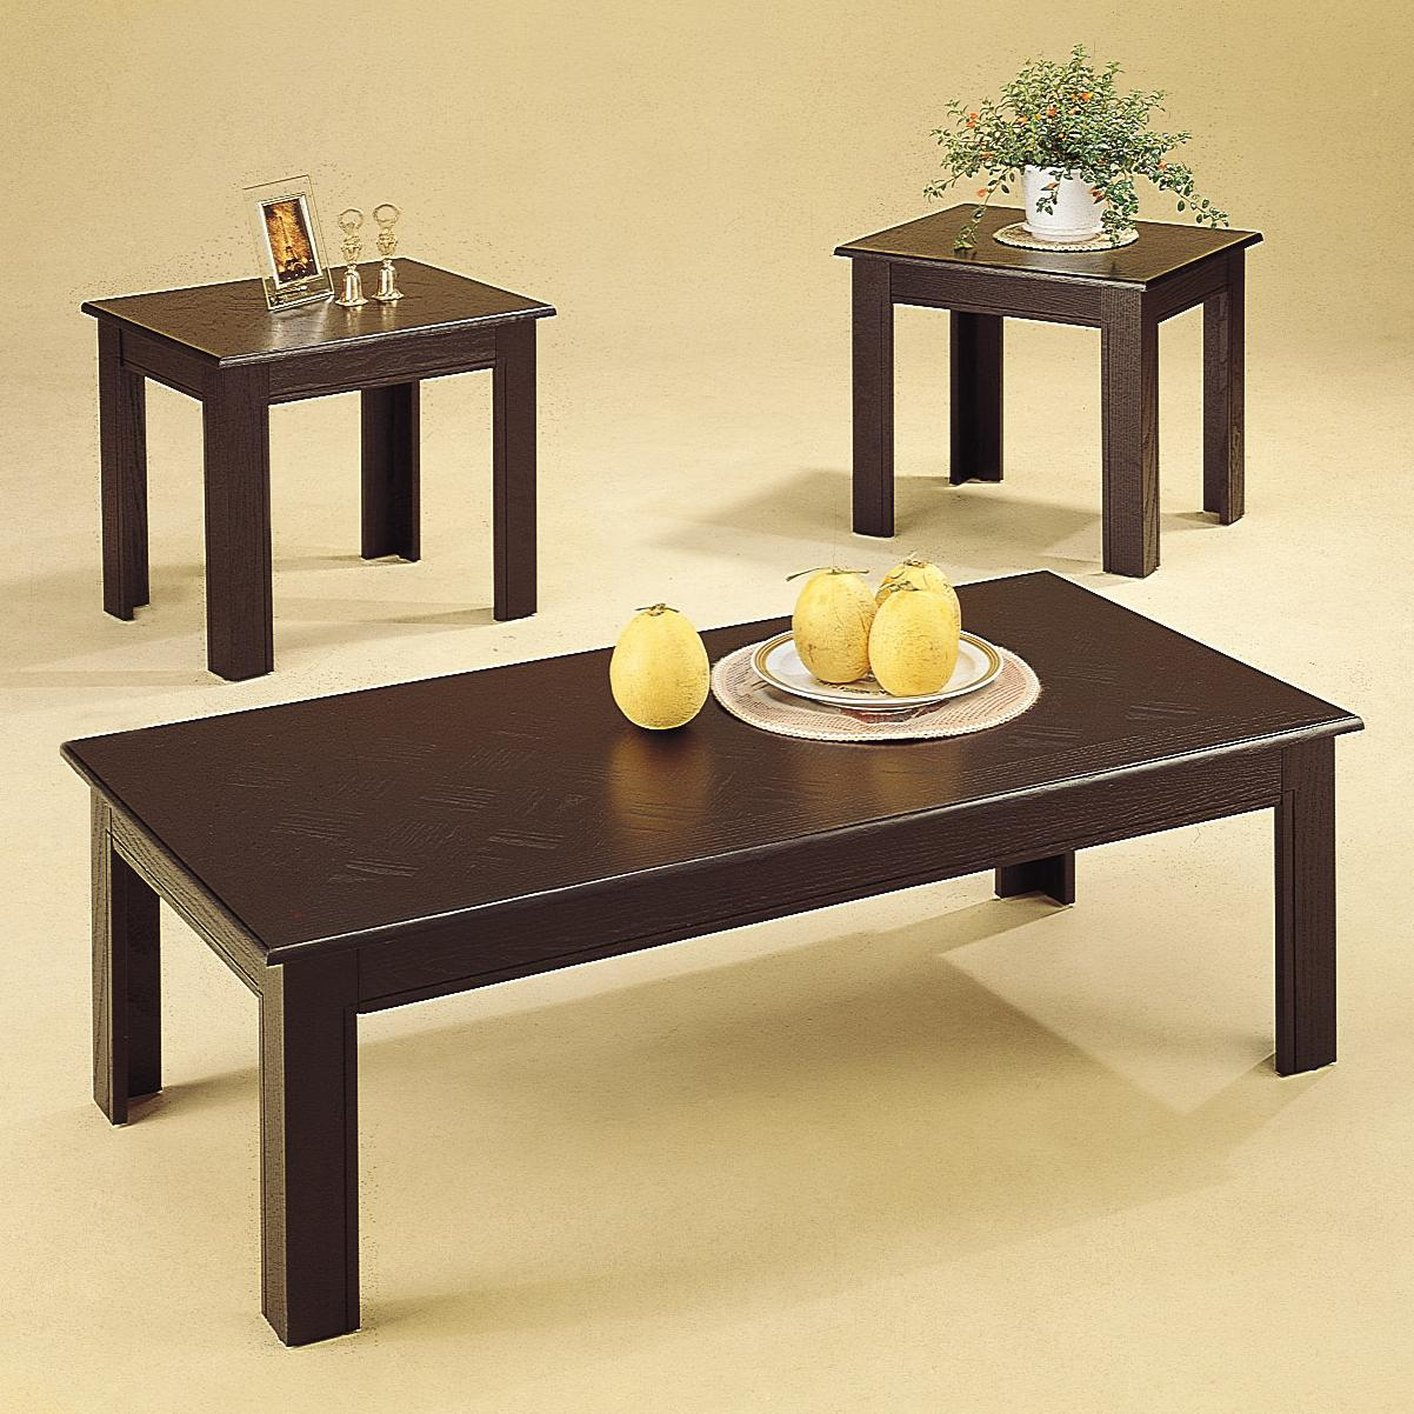 Acosta Black Wood Coffee Table Set StealASofa Furniture Outlet